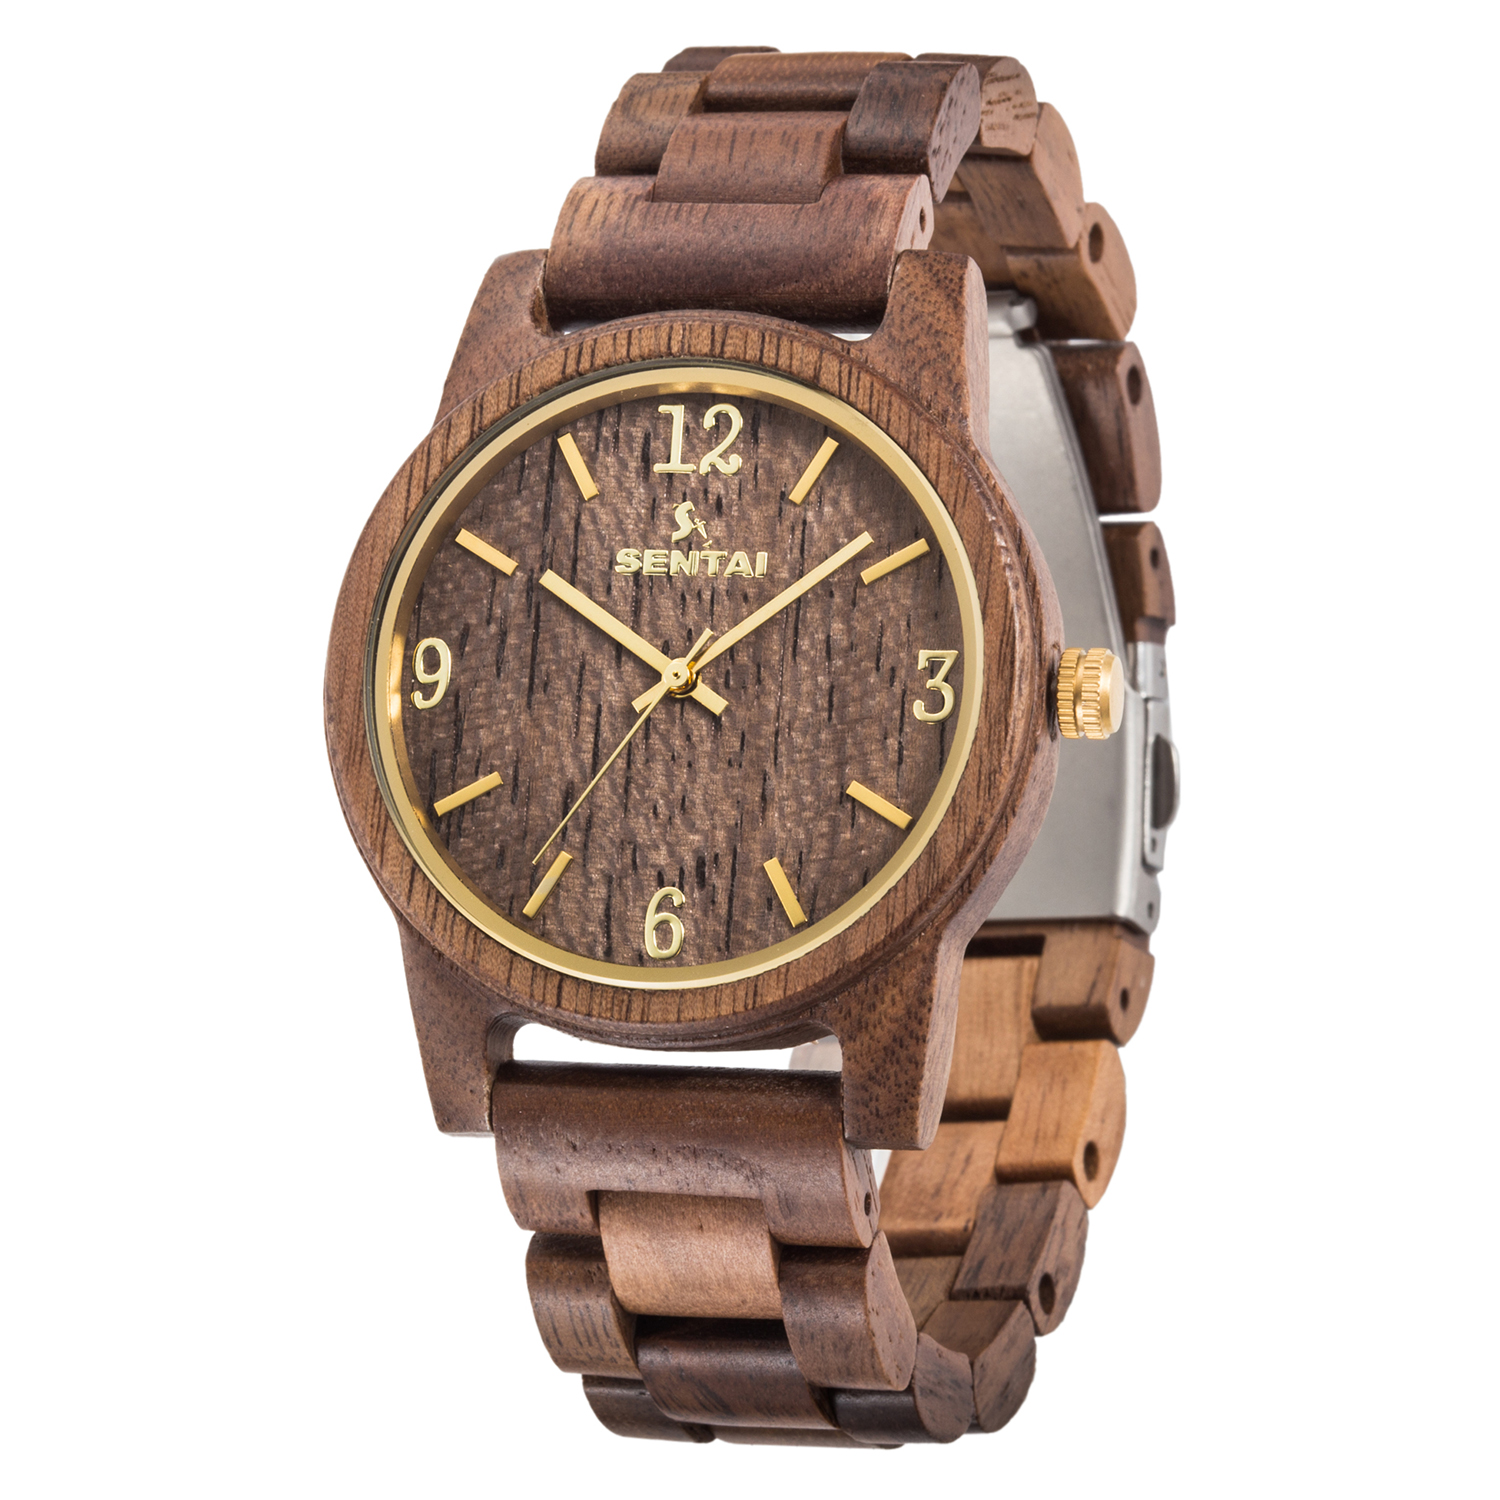 Luxury Brand Mens Wooden Watch Arabic Numberal Big Dial Wood Band Quartz Male Wrist Watch Reloj de Madera Genuine for Gifts